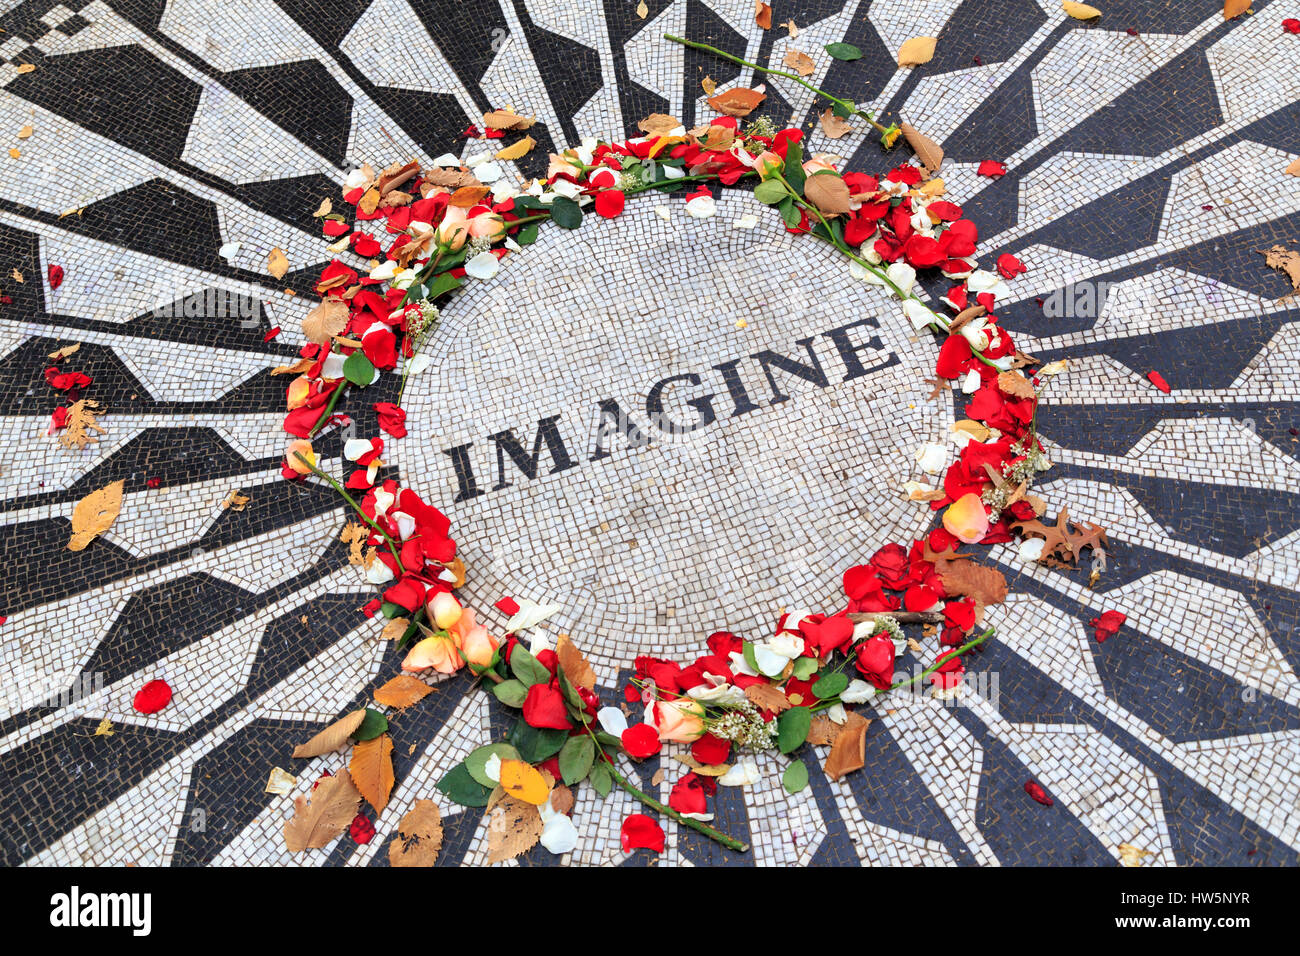 USA, New York City, Manhattan, Central Park, Strawberry Fields, Imagine Mosaic - Stock Image